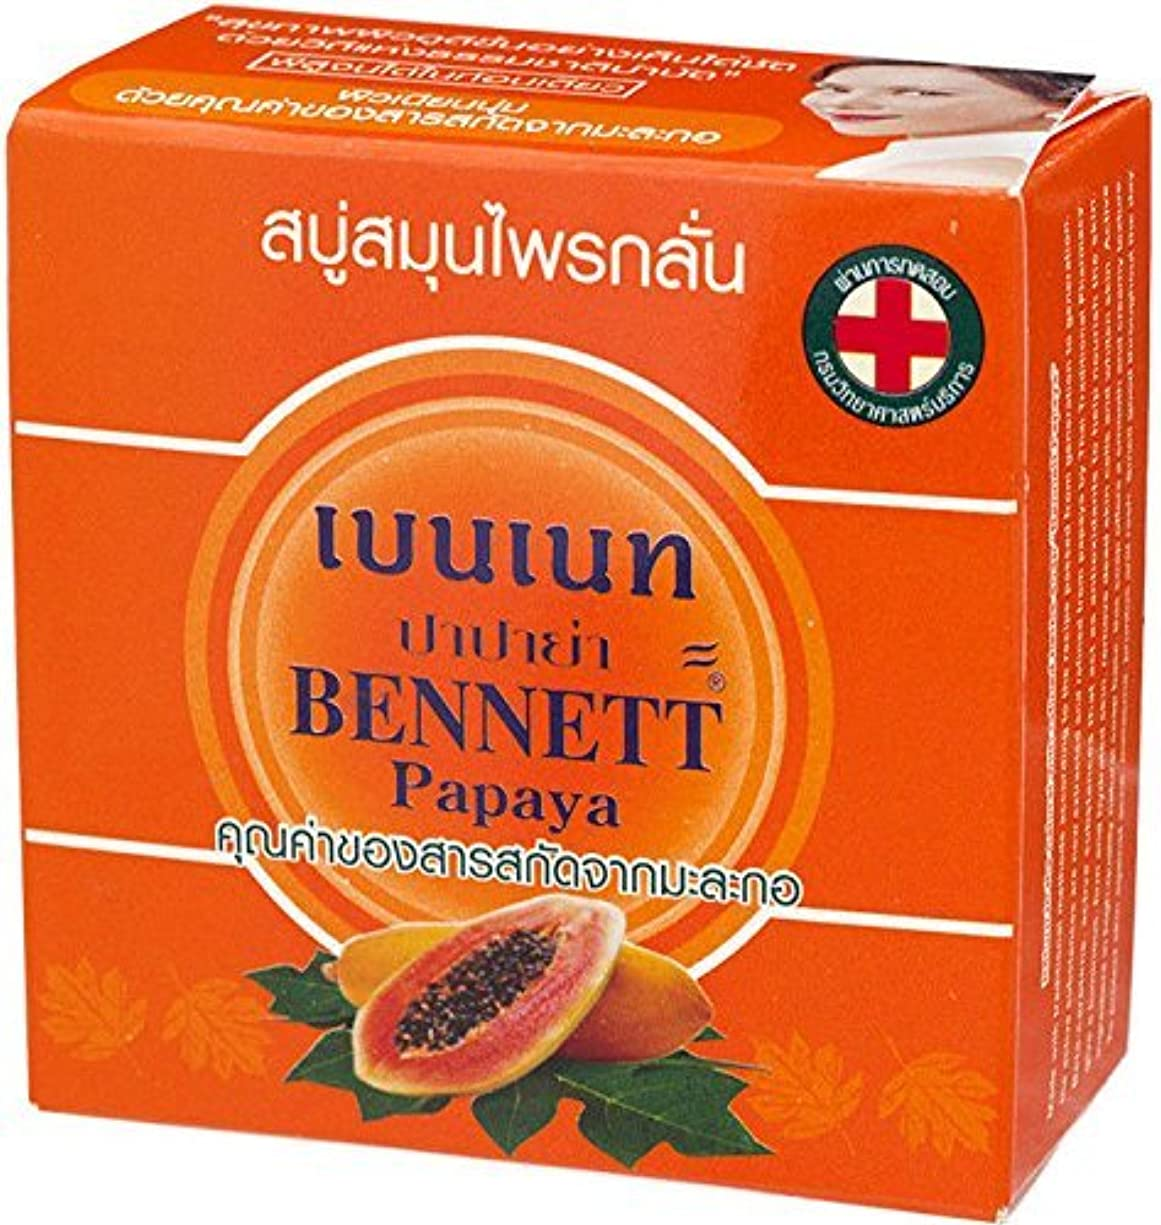 マザーランドフォーム小数PARROT HERBAL NATURAL EXTRACT THAI PAPAYA PLUS ALOE VERA AND HONEY SOAP BAR 75G [並行輸入品]